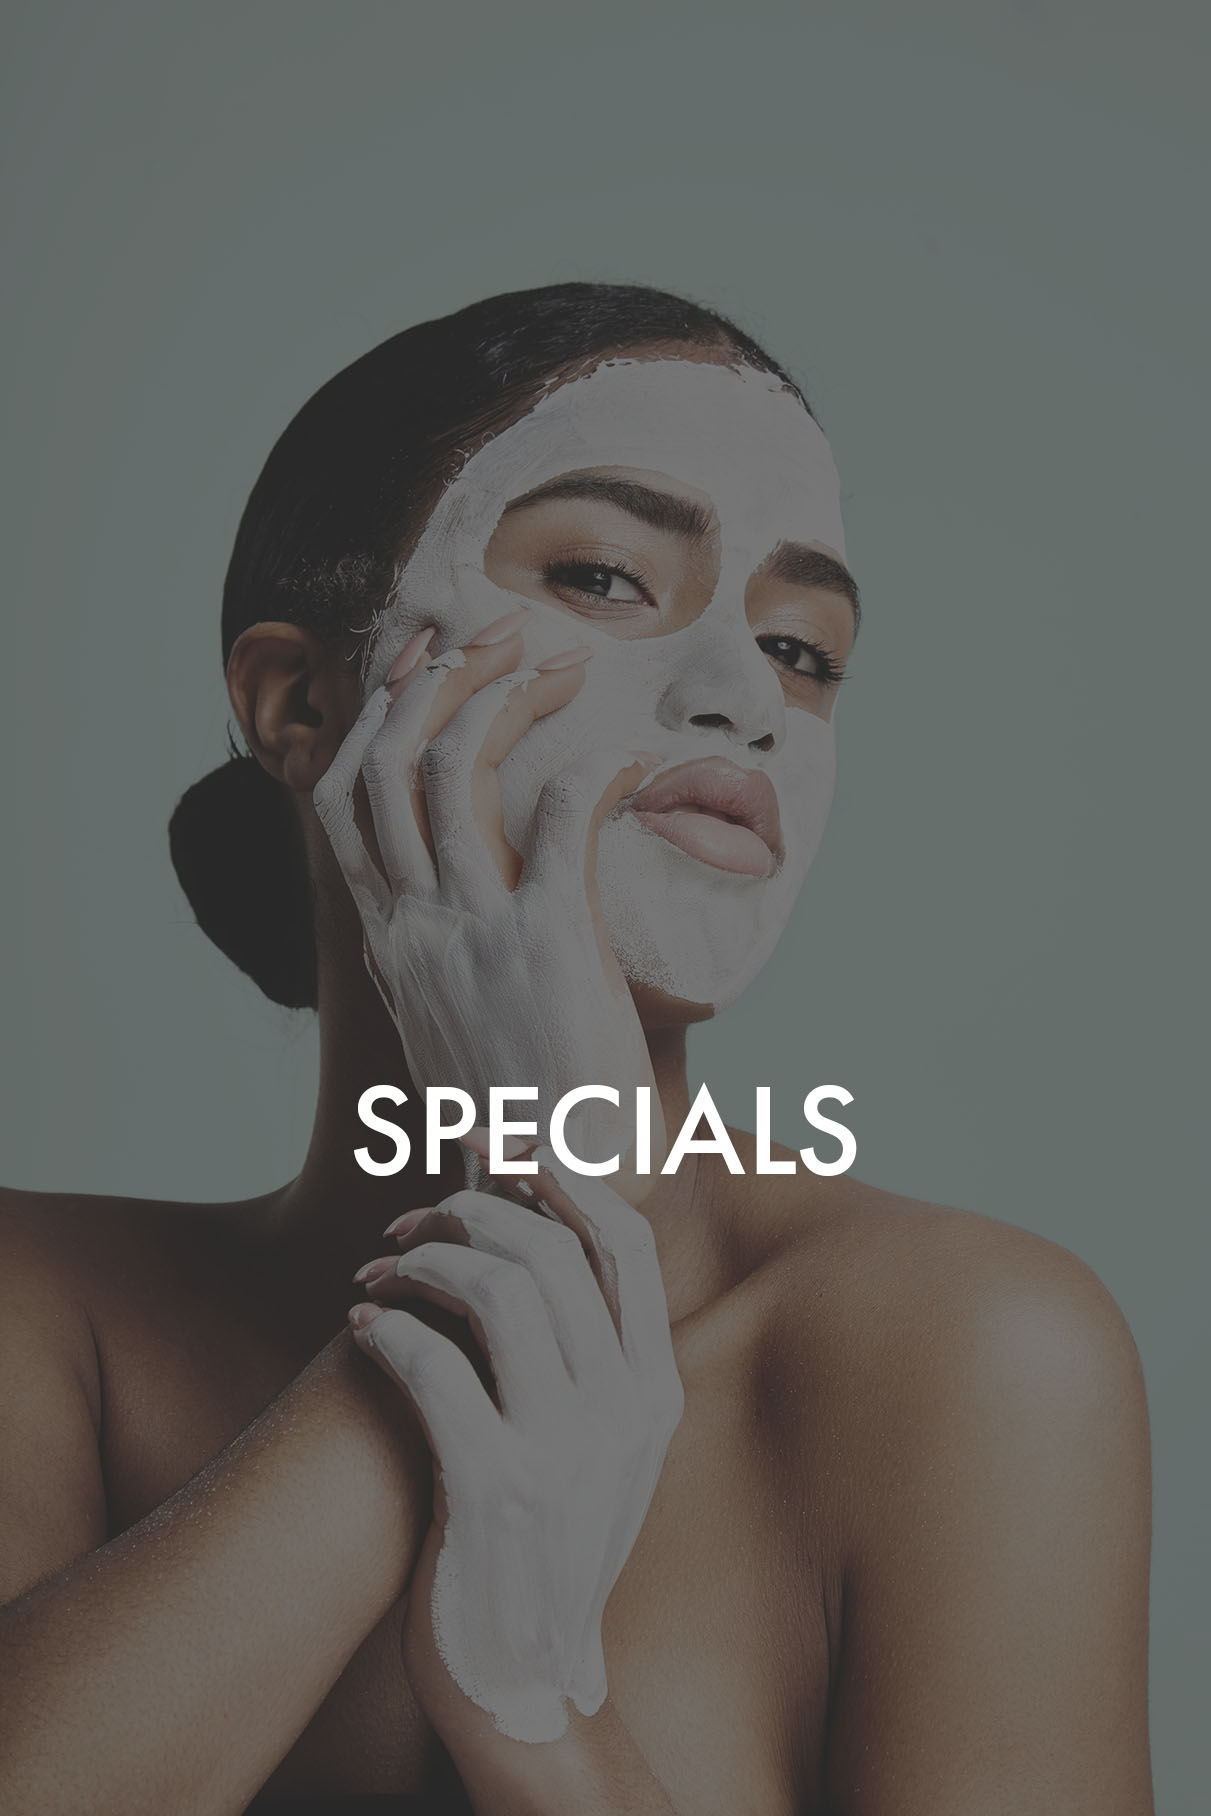 SPECIALS   Weekly specials, holiday specials, and a whole lot more ways for you to enjoy our services at the best rates